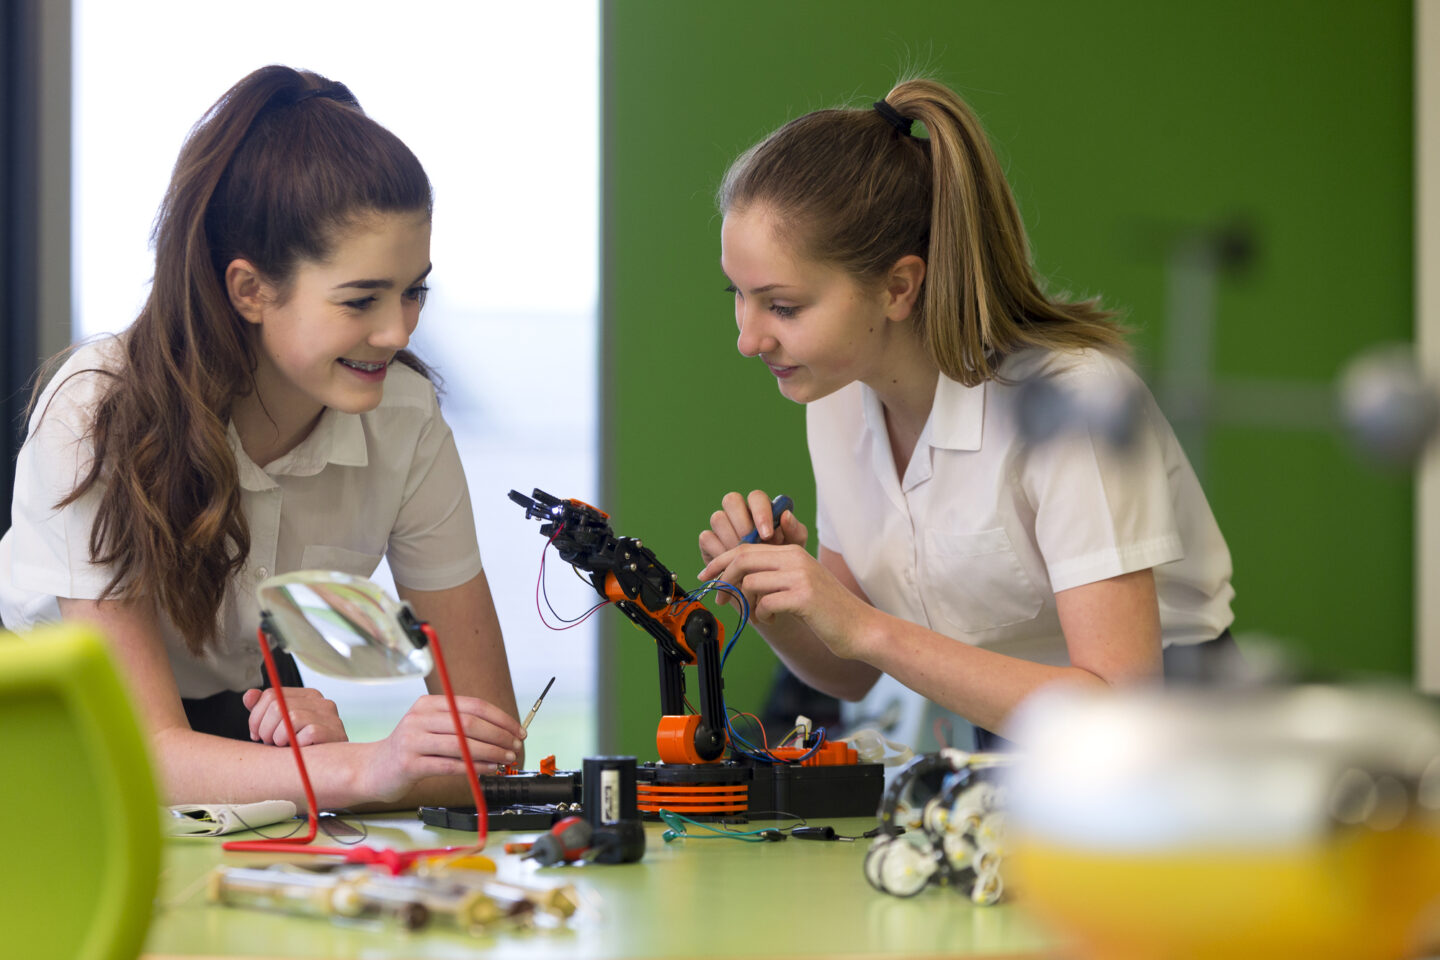 Choosing a Secondary School: The Factors we're Considering